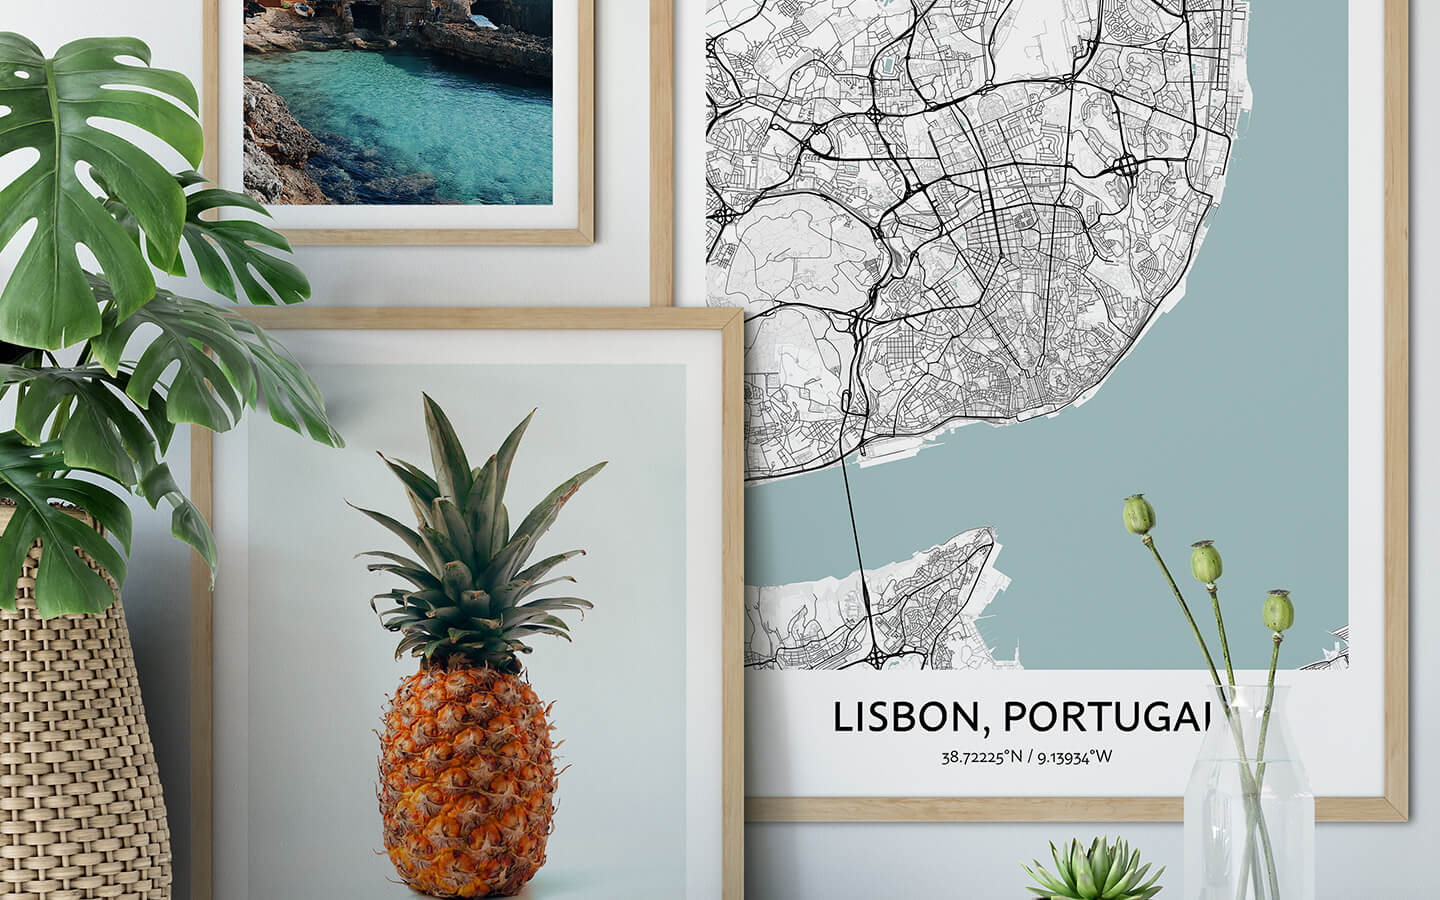 A map of Lisbon hanging on the wall in a nice, bright apartment interior